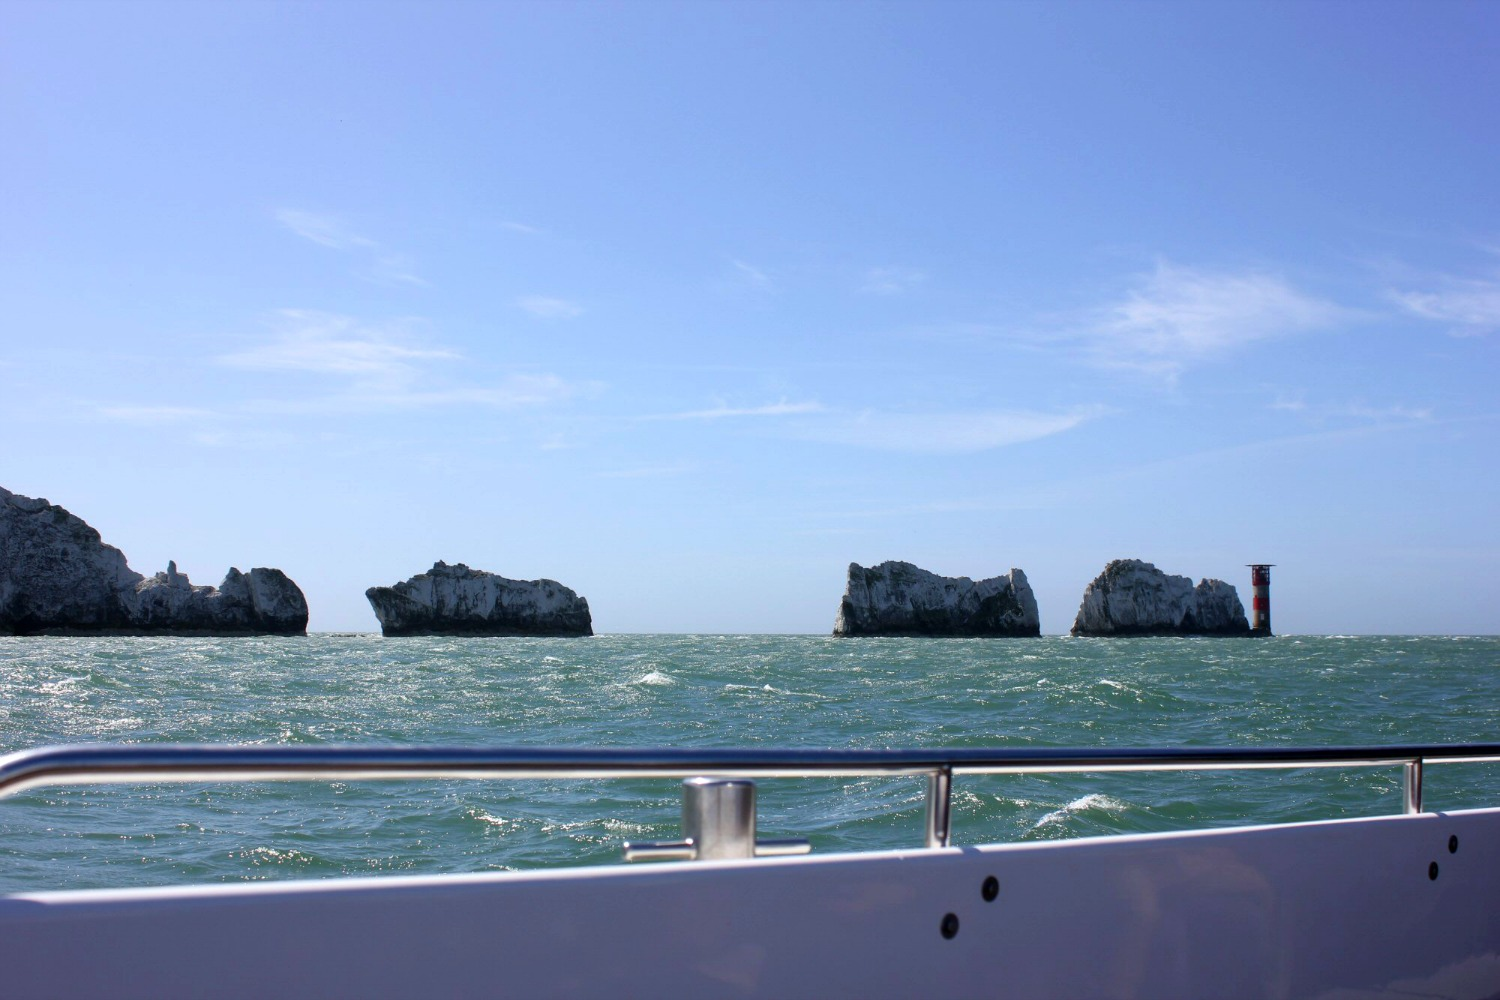 A view onto the turquoise sea, looking out to The Needles from our boat - discovering the Isle of Wight coast